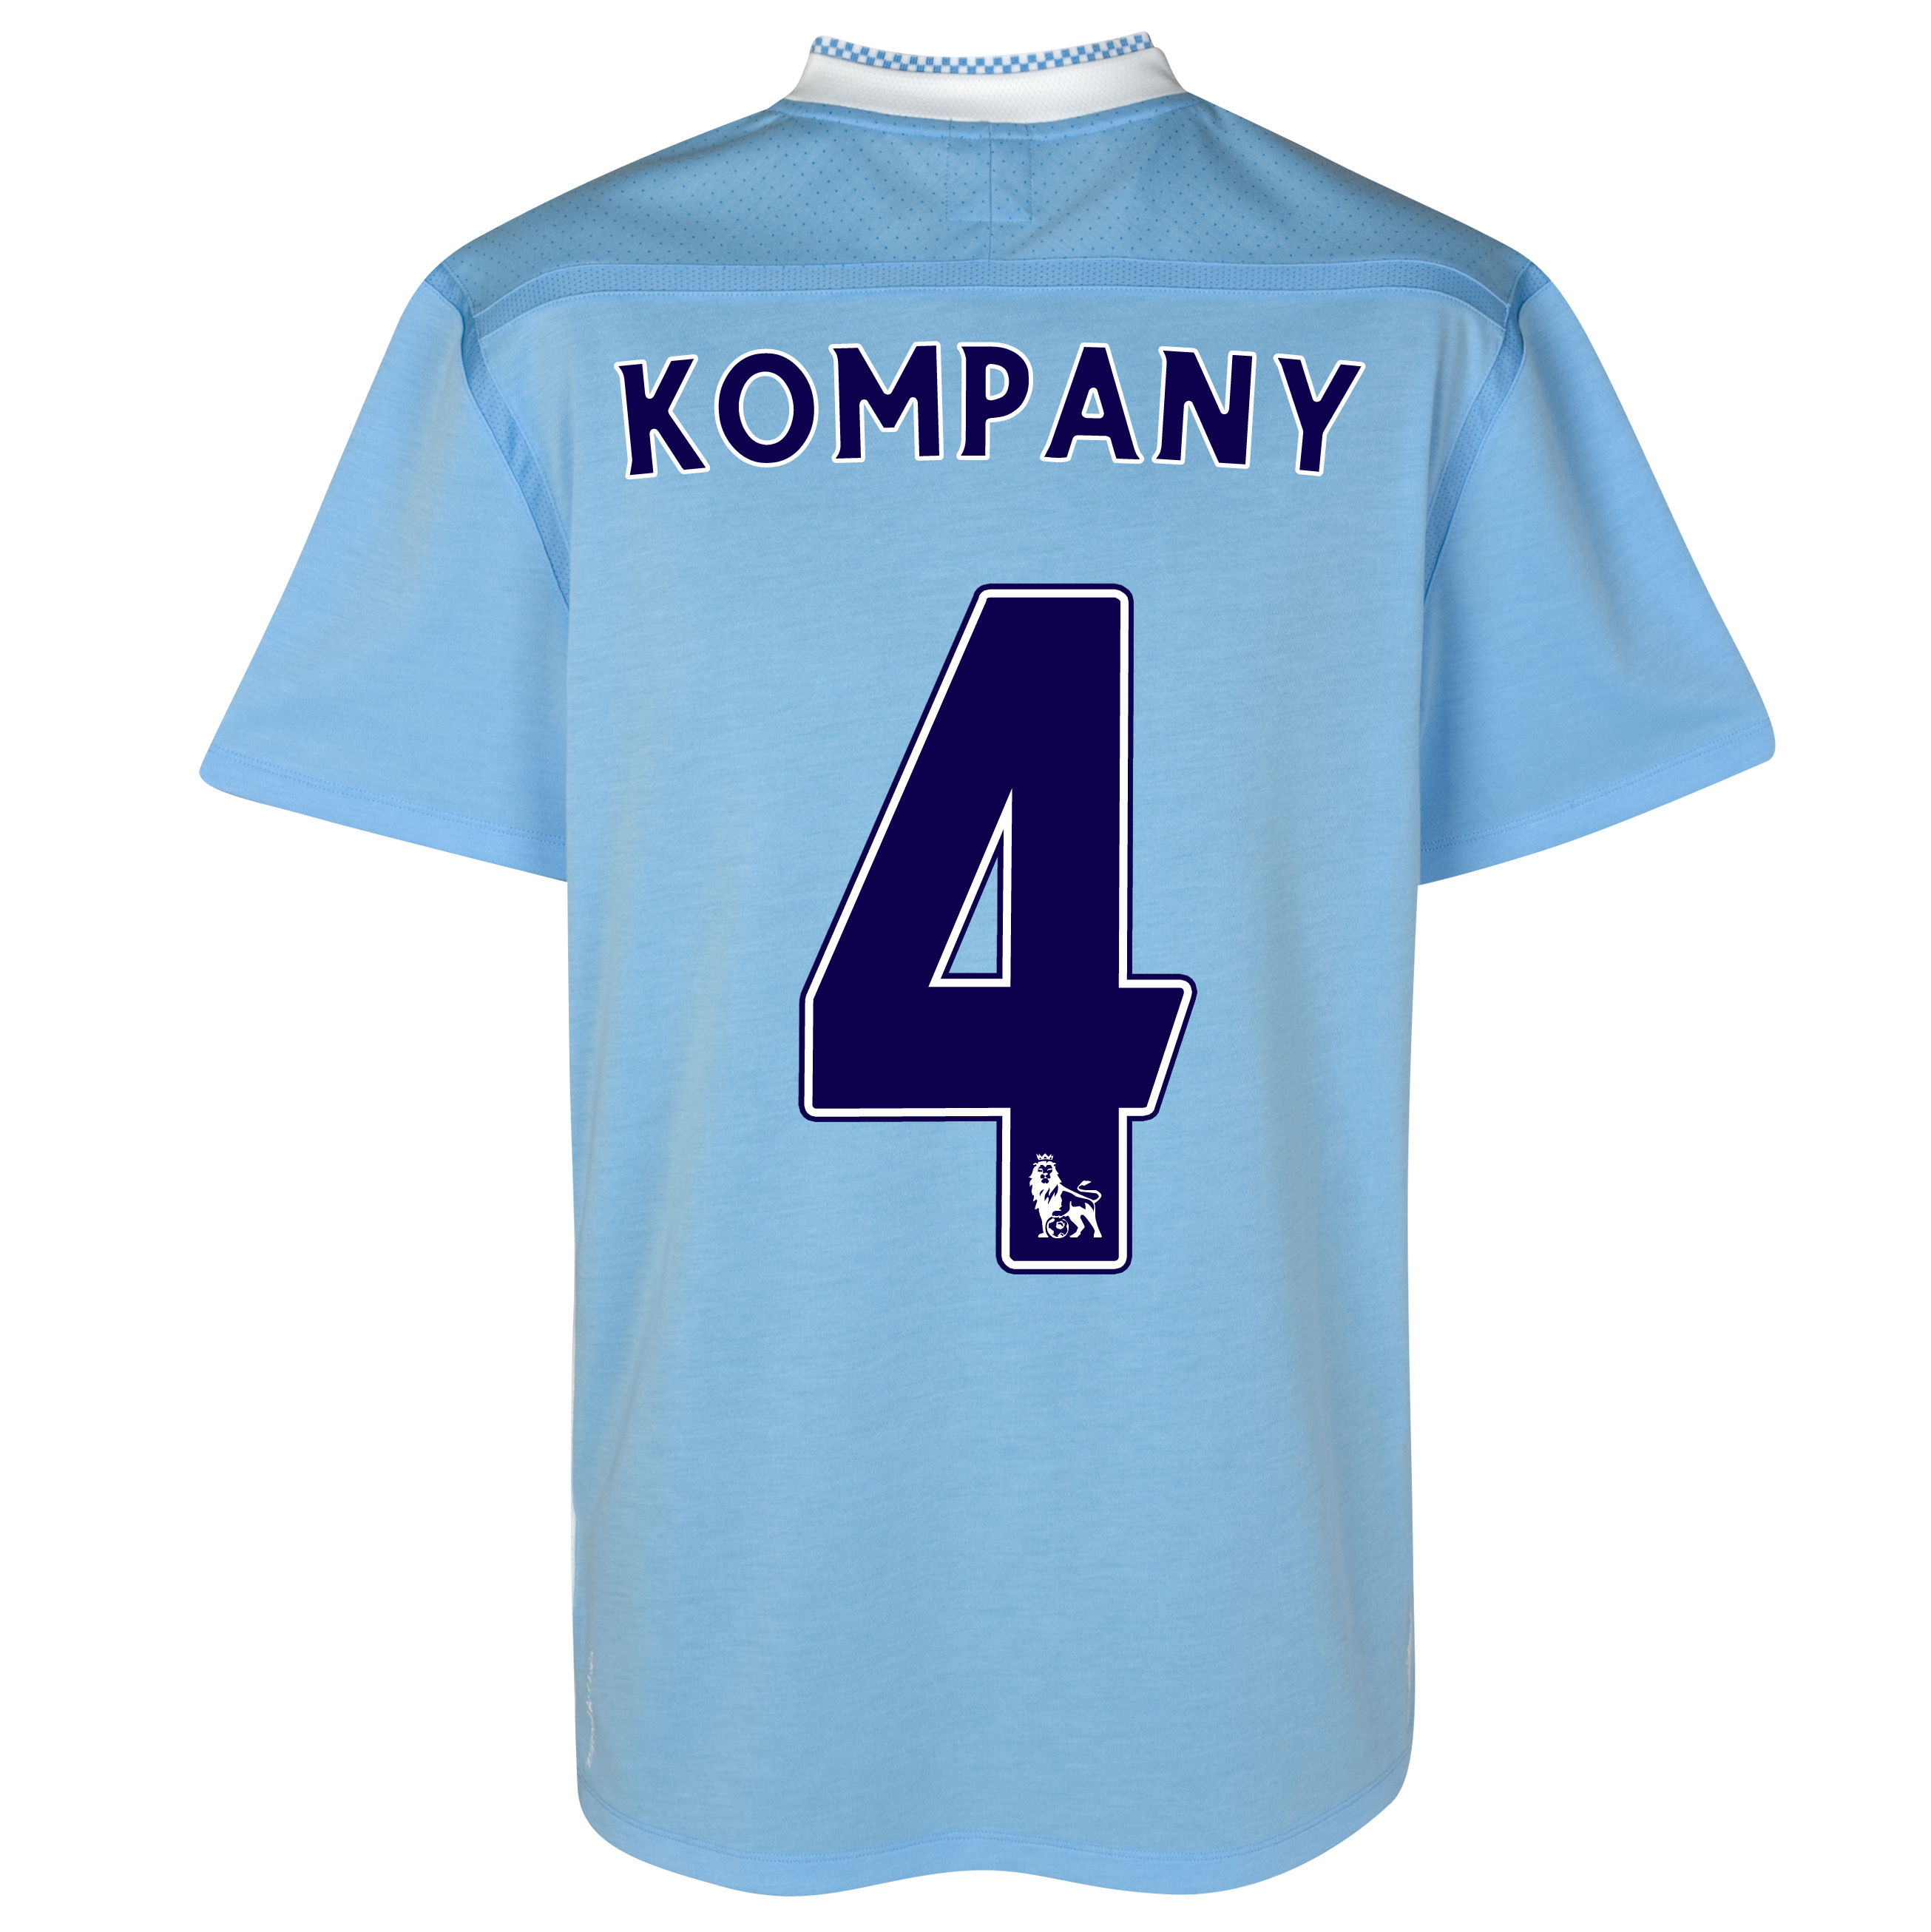 Manchester City Home Shirt 2011/12 with Kompany 4 printing